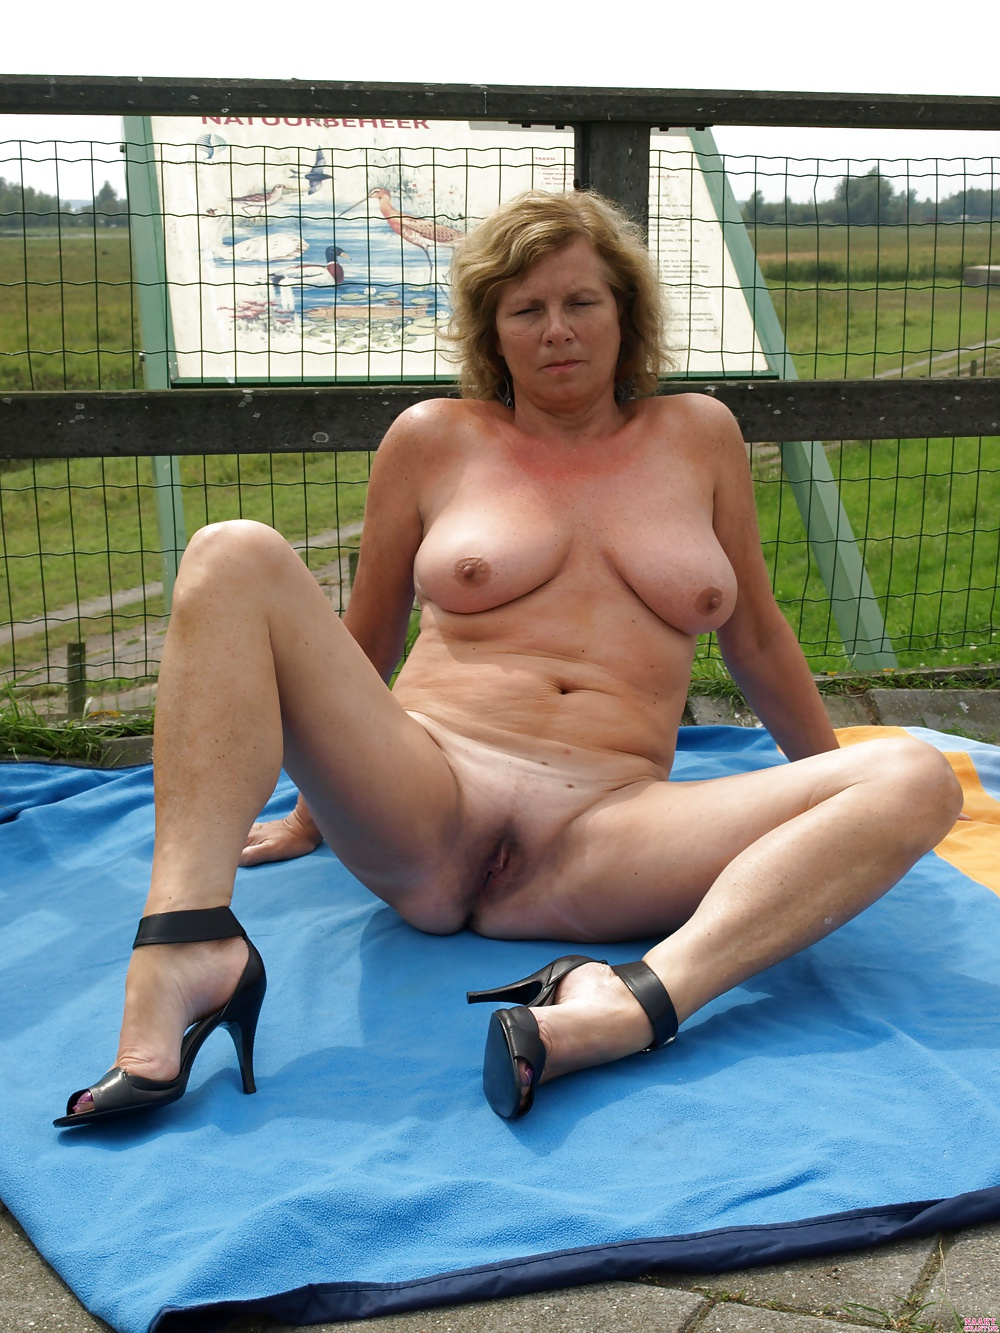 Mature exhibitionist wife videos — img 14